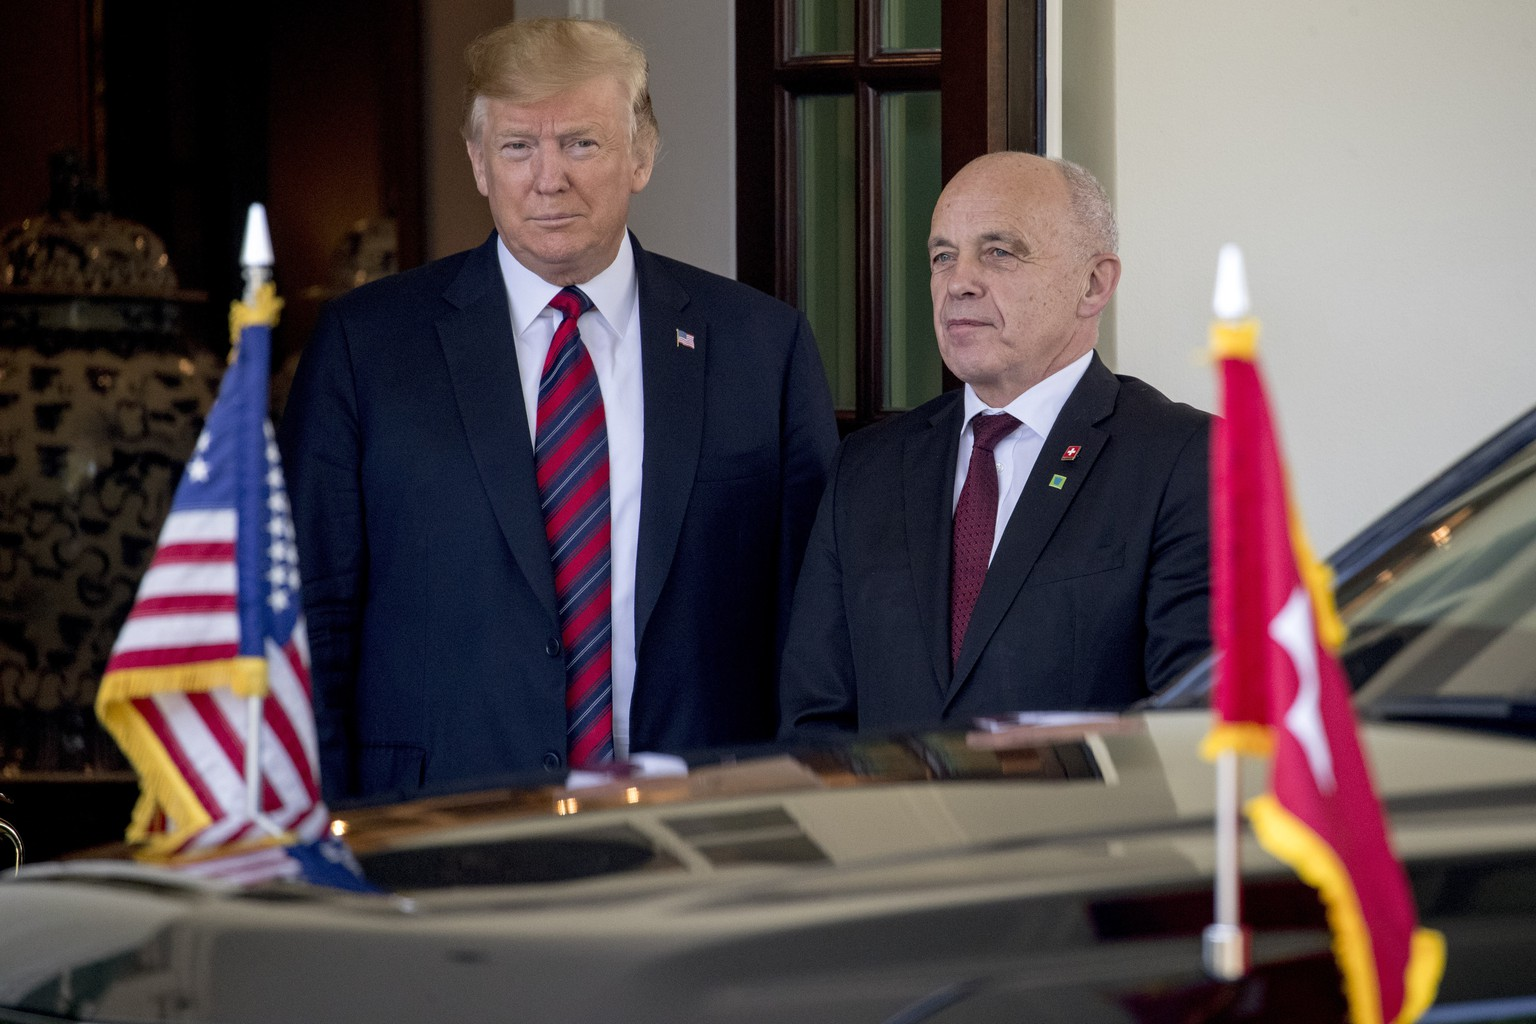 President Donald Trump welcomes Switzerland's Federal President Ueli Maurer, right, to the White House, Thursday, May 16, 2019, in Washington. (AP Photo/Andrew Harnik)